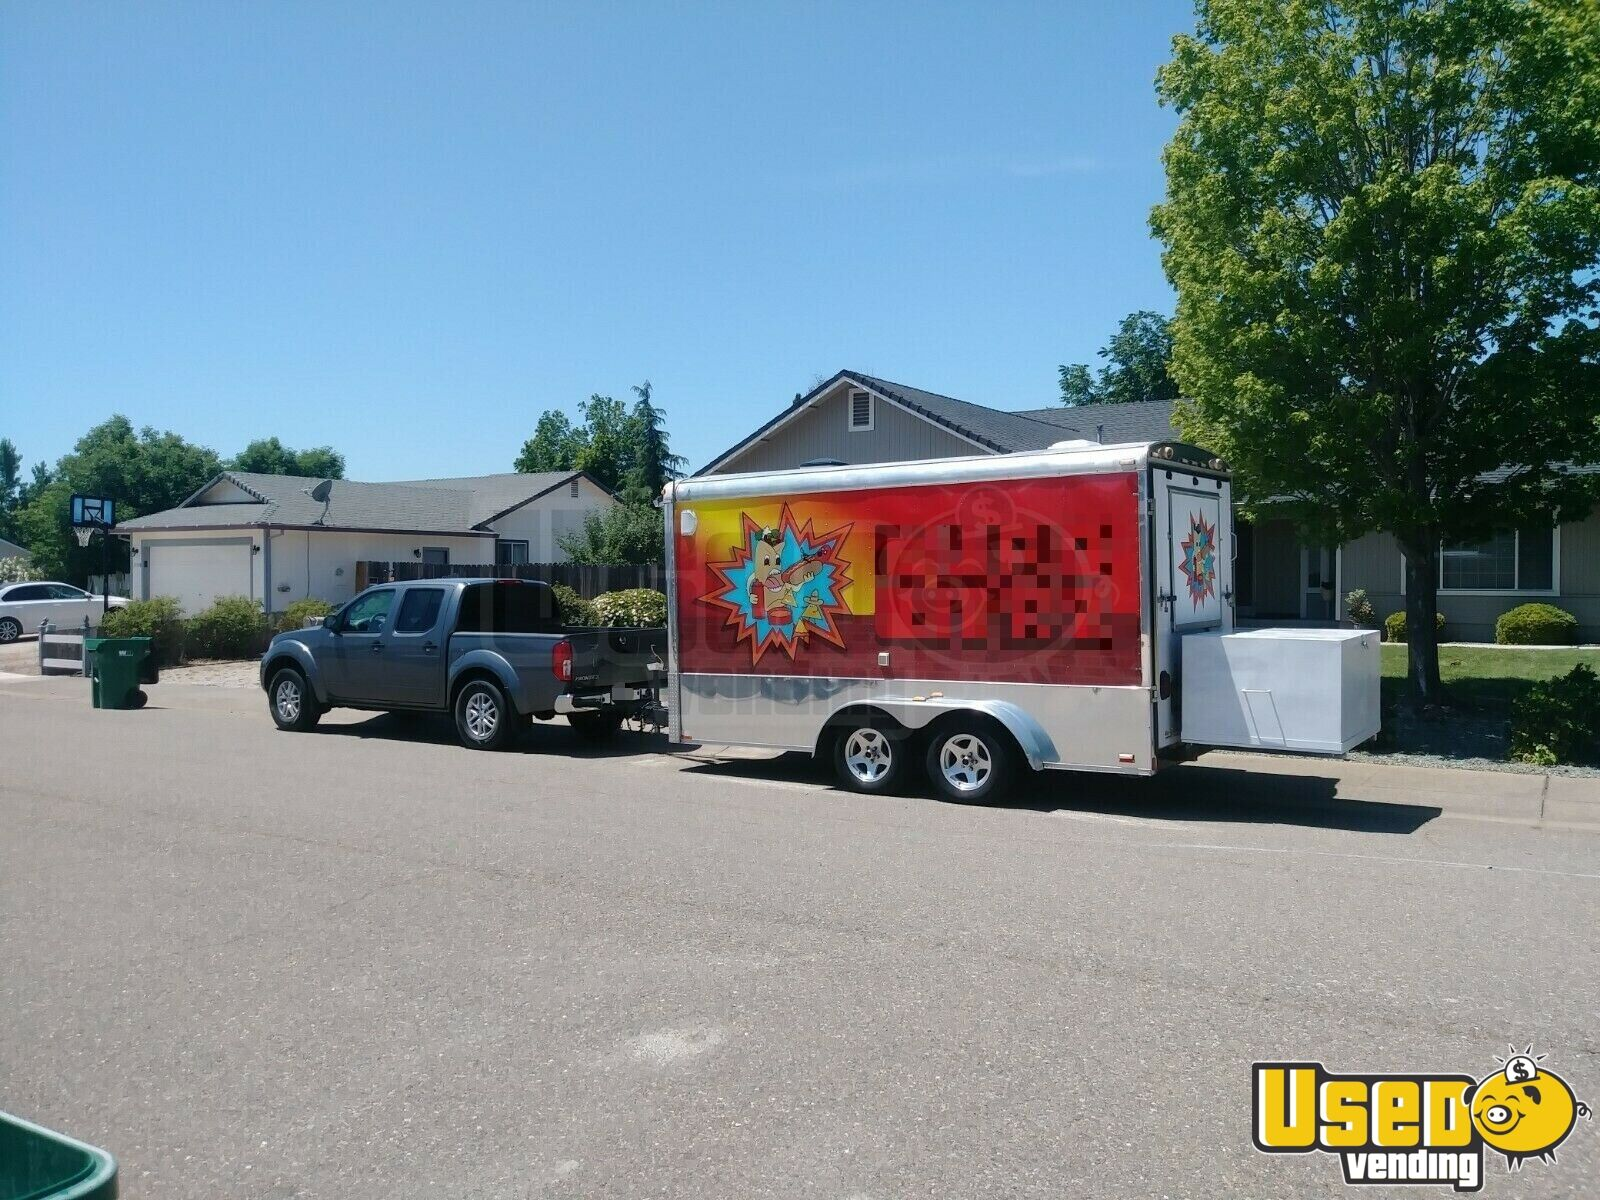 2004 Food Concession Trailer Concession Trailer Shore Power Cord California for Sale - 5